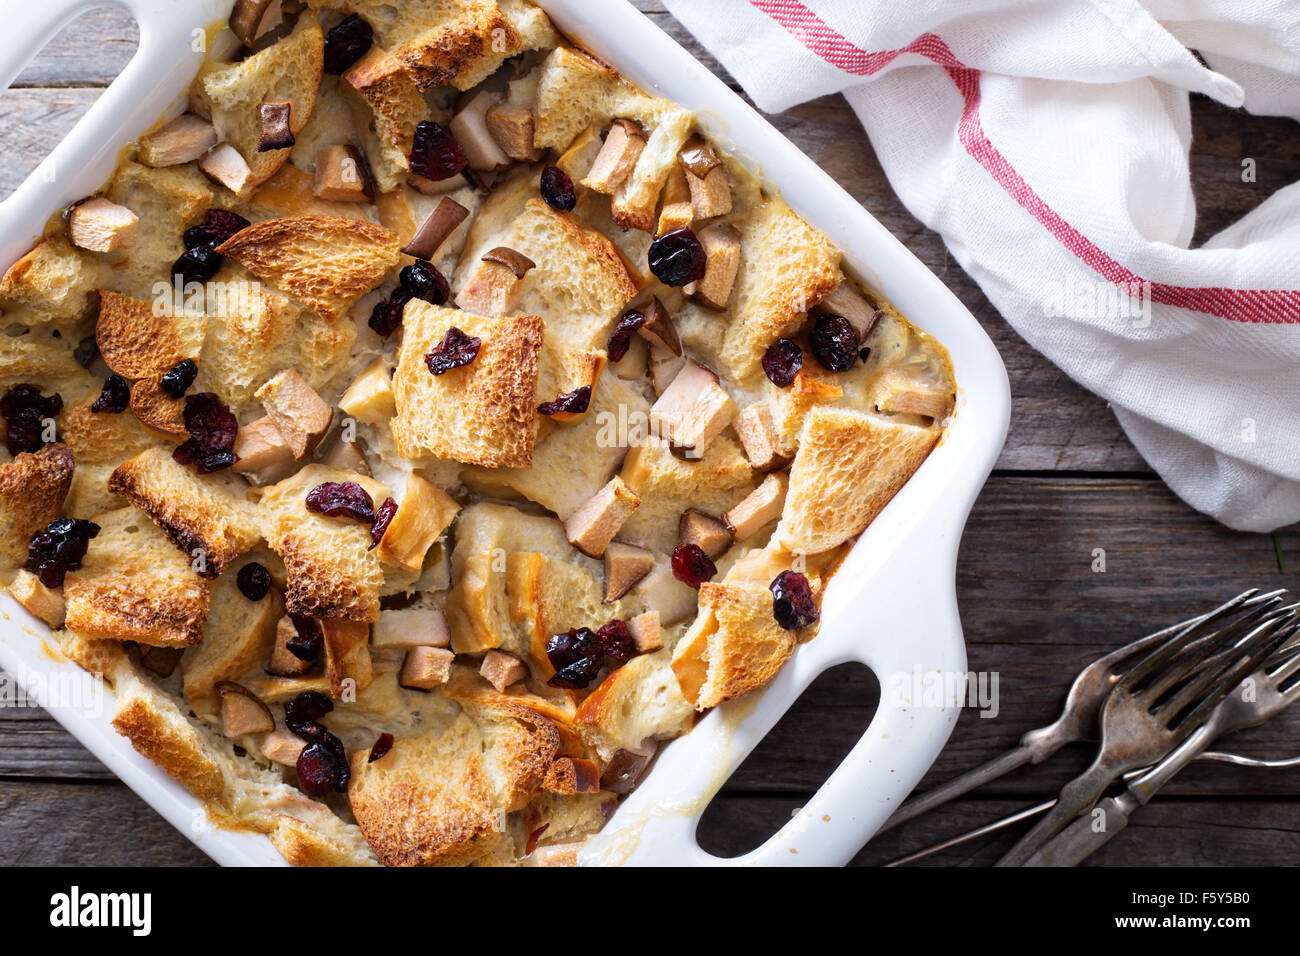 Bread pudding breakfast casserole with pear and dried cranberry - Stock Image